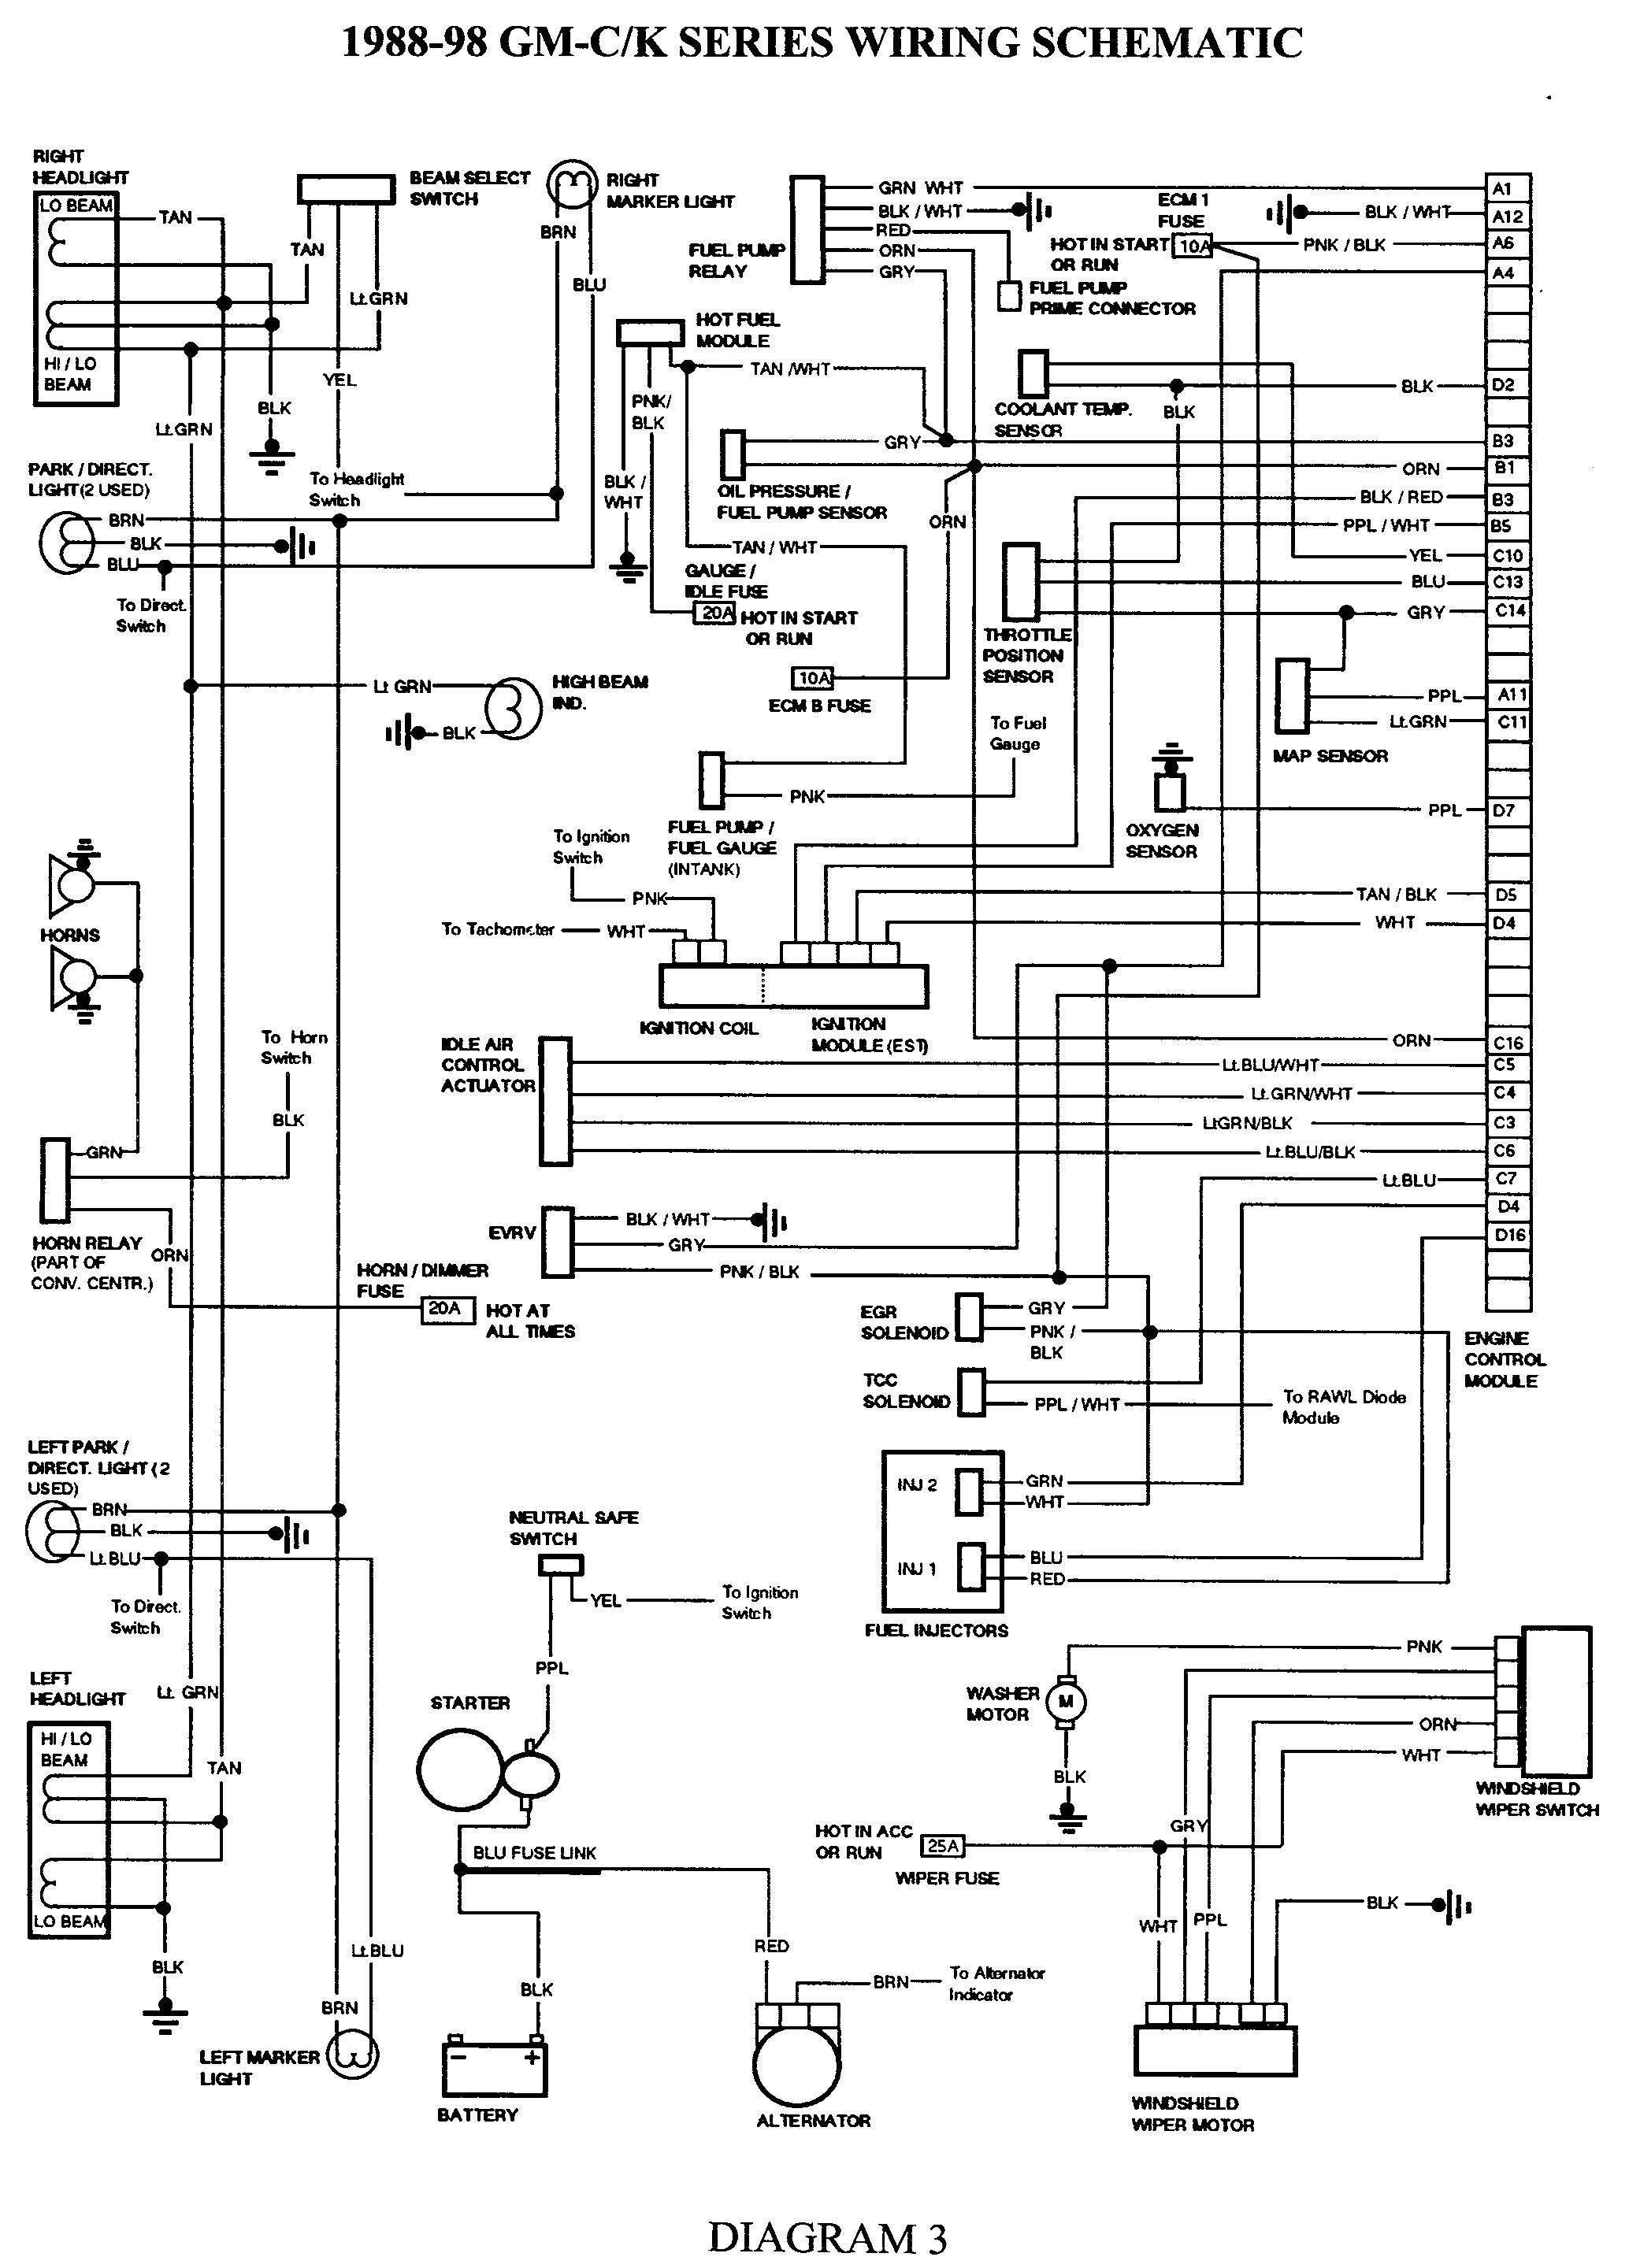 Bass Tracker Wiring Diagram - best fusebox and wiring diagram  component-poet - component-poet.lesmalinspres.fr | Bass Tracker Boat Electrical Wiring Diagram |  | component-poet.lesmalinspres.fr